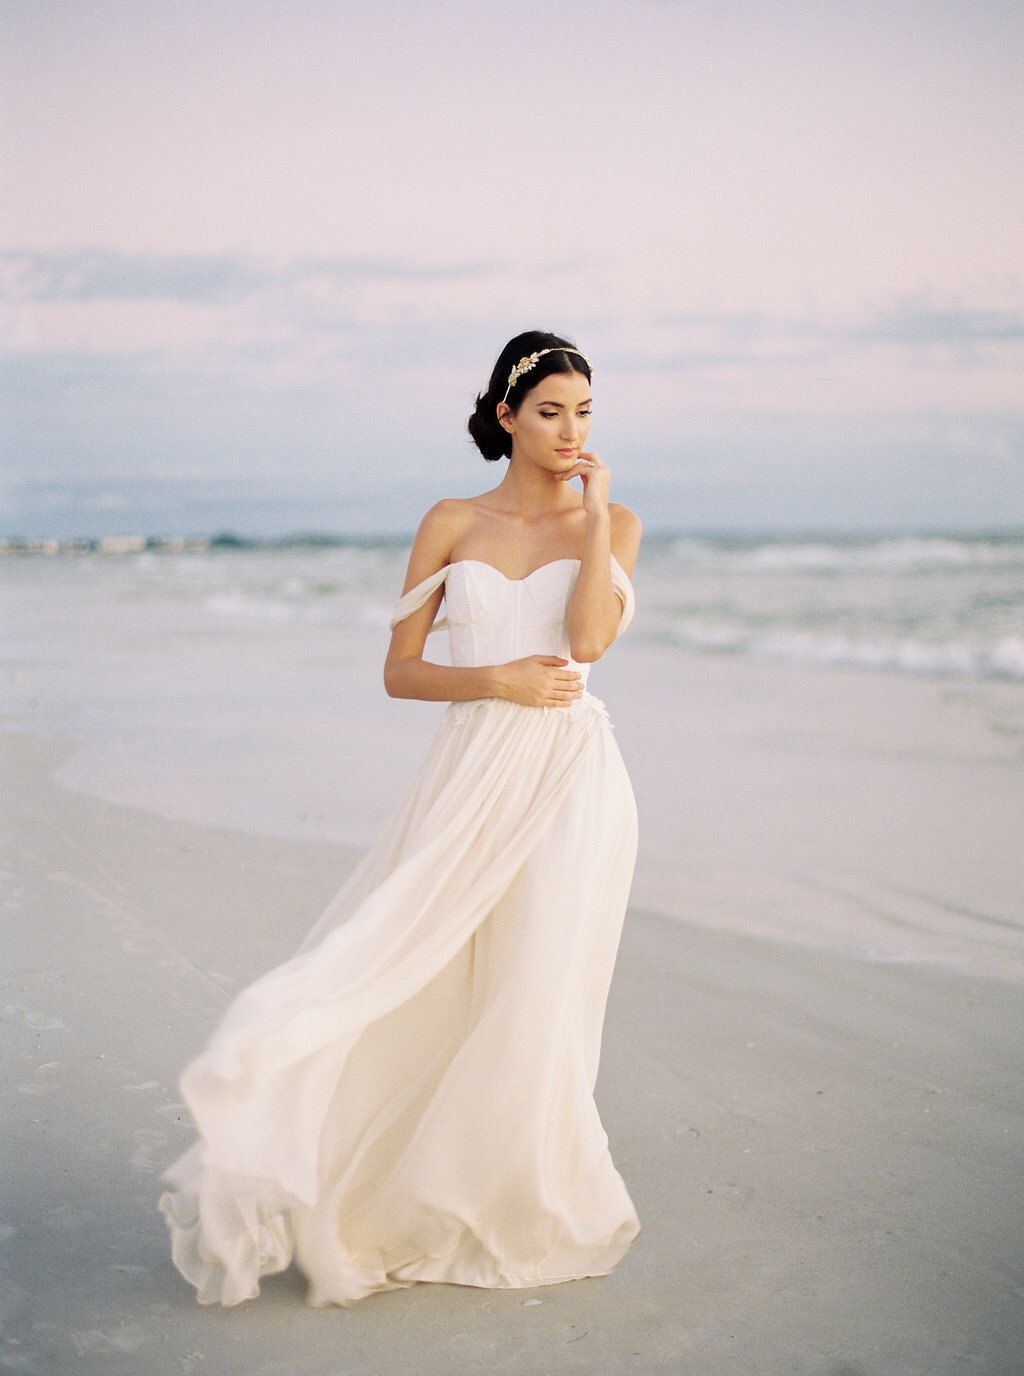 Chiffon And Lace Wedding Dress Ivory Silk Off The Shoulder Gown Colette By Jillianfellers On